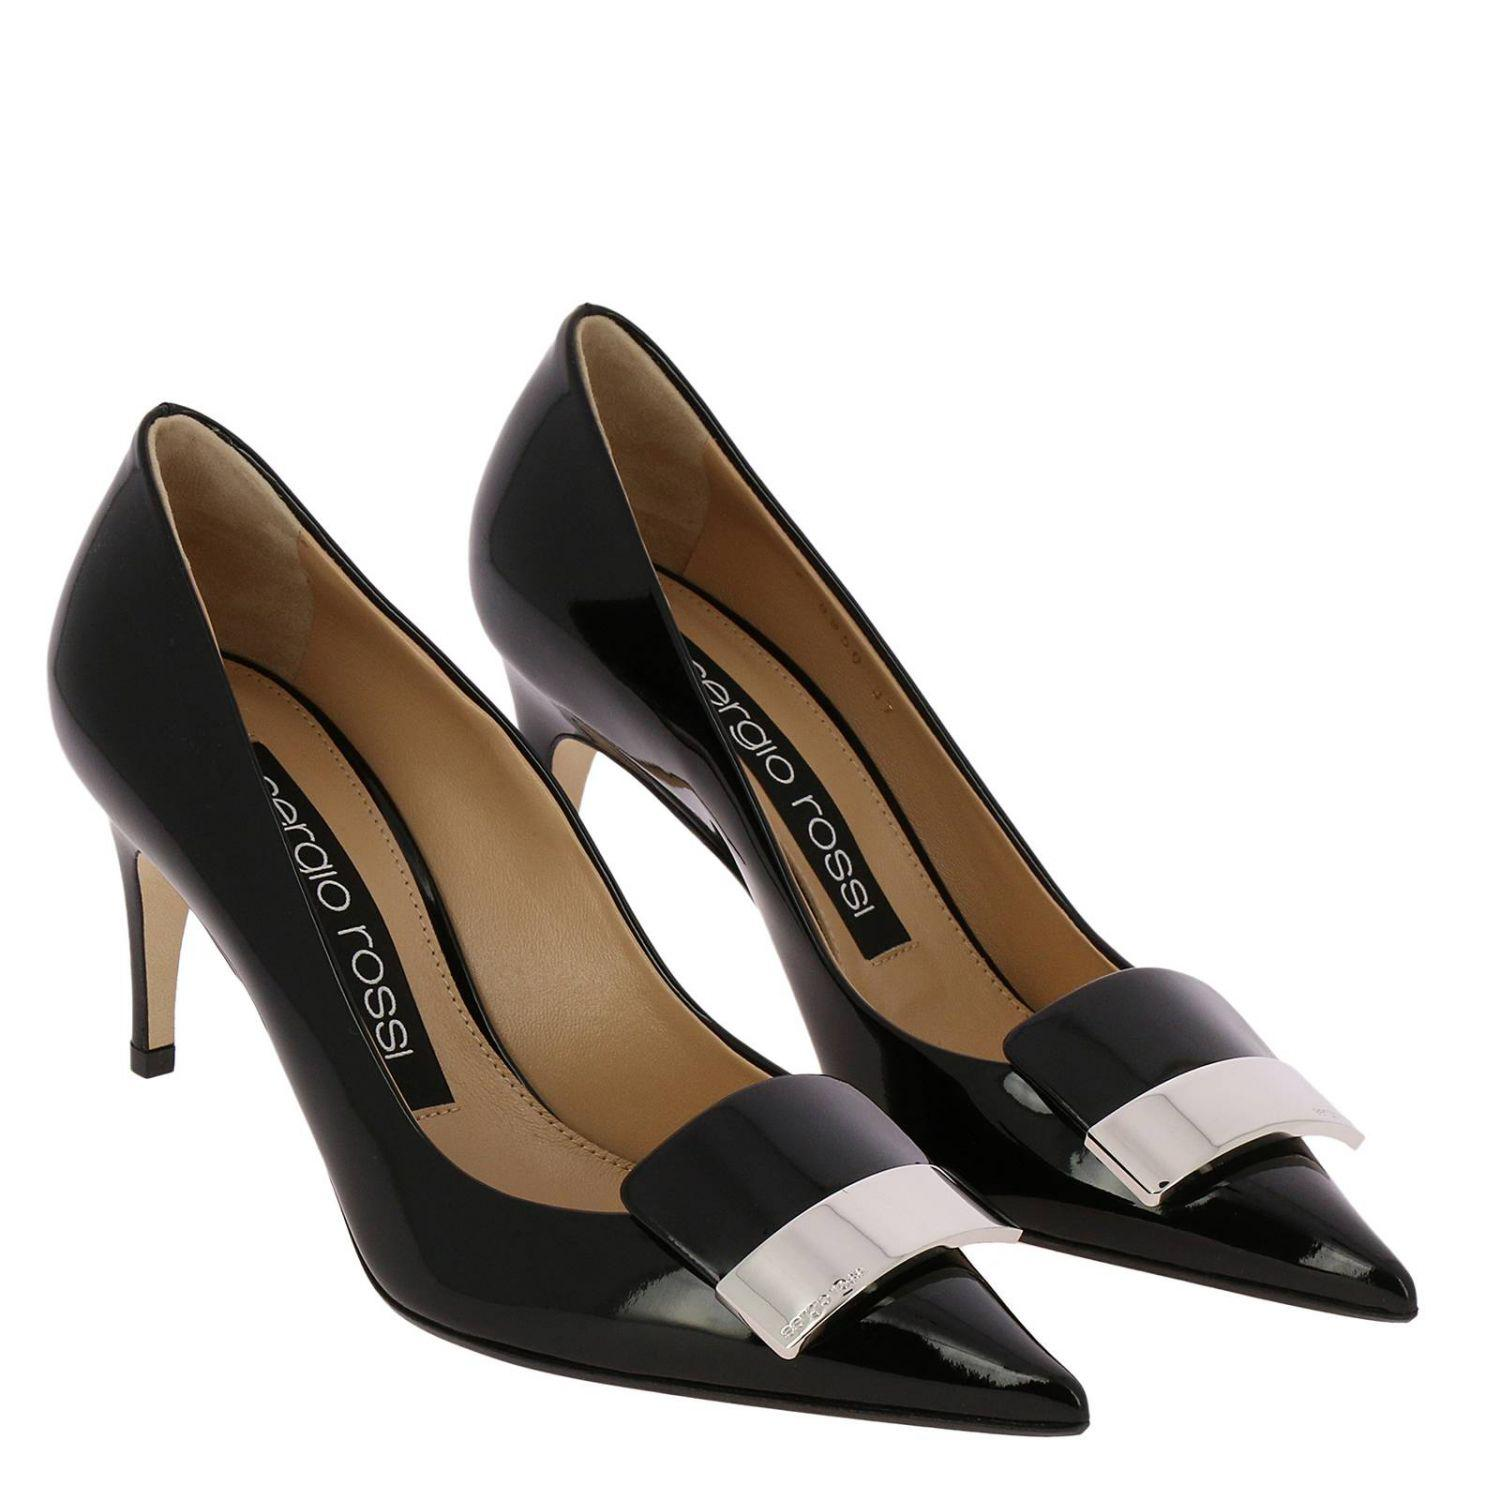 49e6529b705f Sergio Rossi - Black Pumps Shoes Women - Lyst. View fullscreen